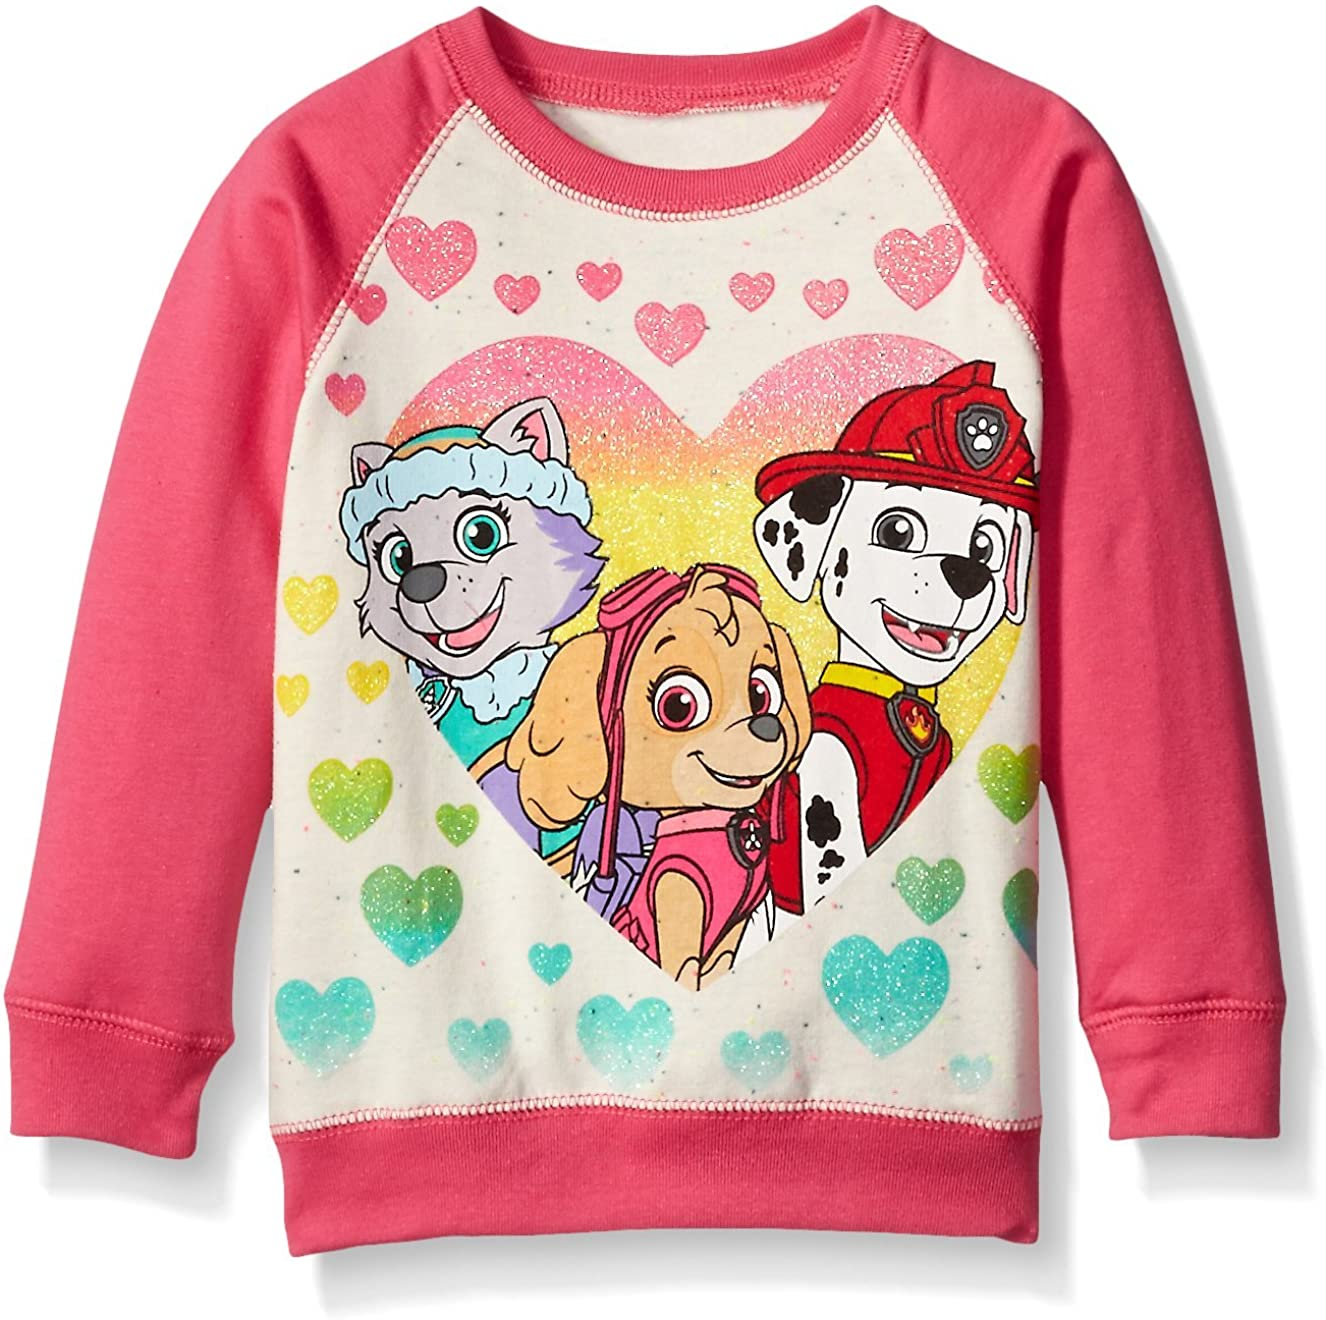 Paw Patrol Little Girls' Toddler Skye, Everest, and Marshall Hearts French Terry Sweatshirt, Cream/Pink, 3T: Clothing